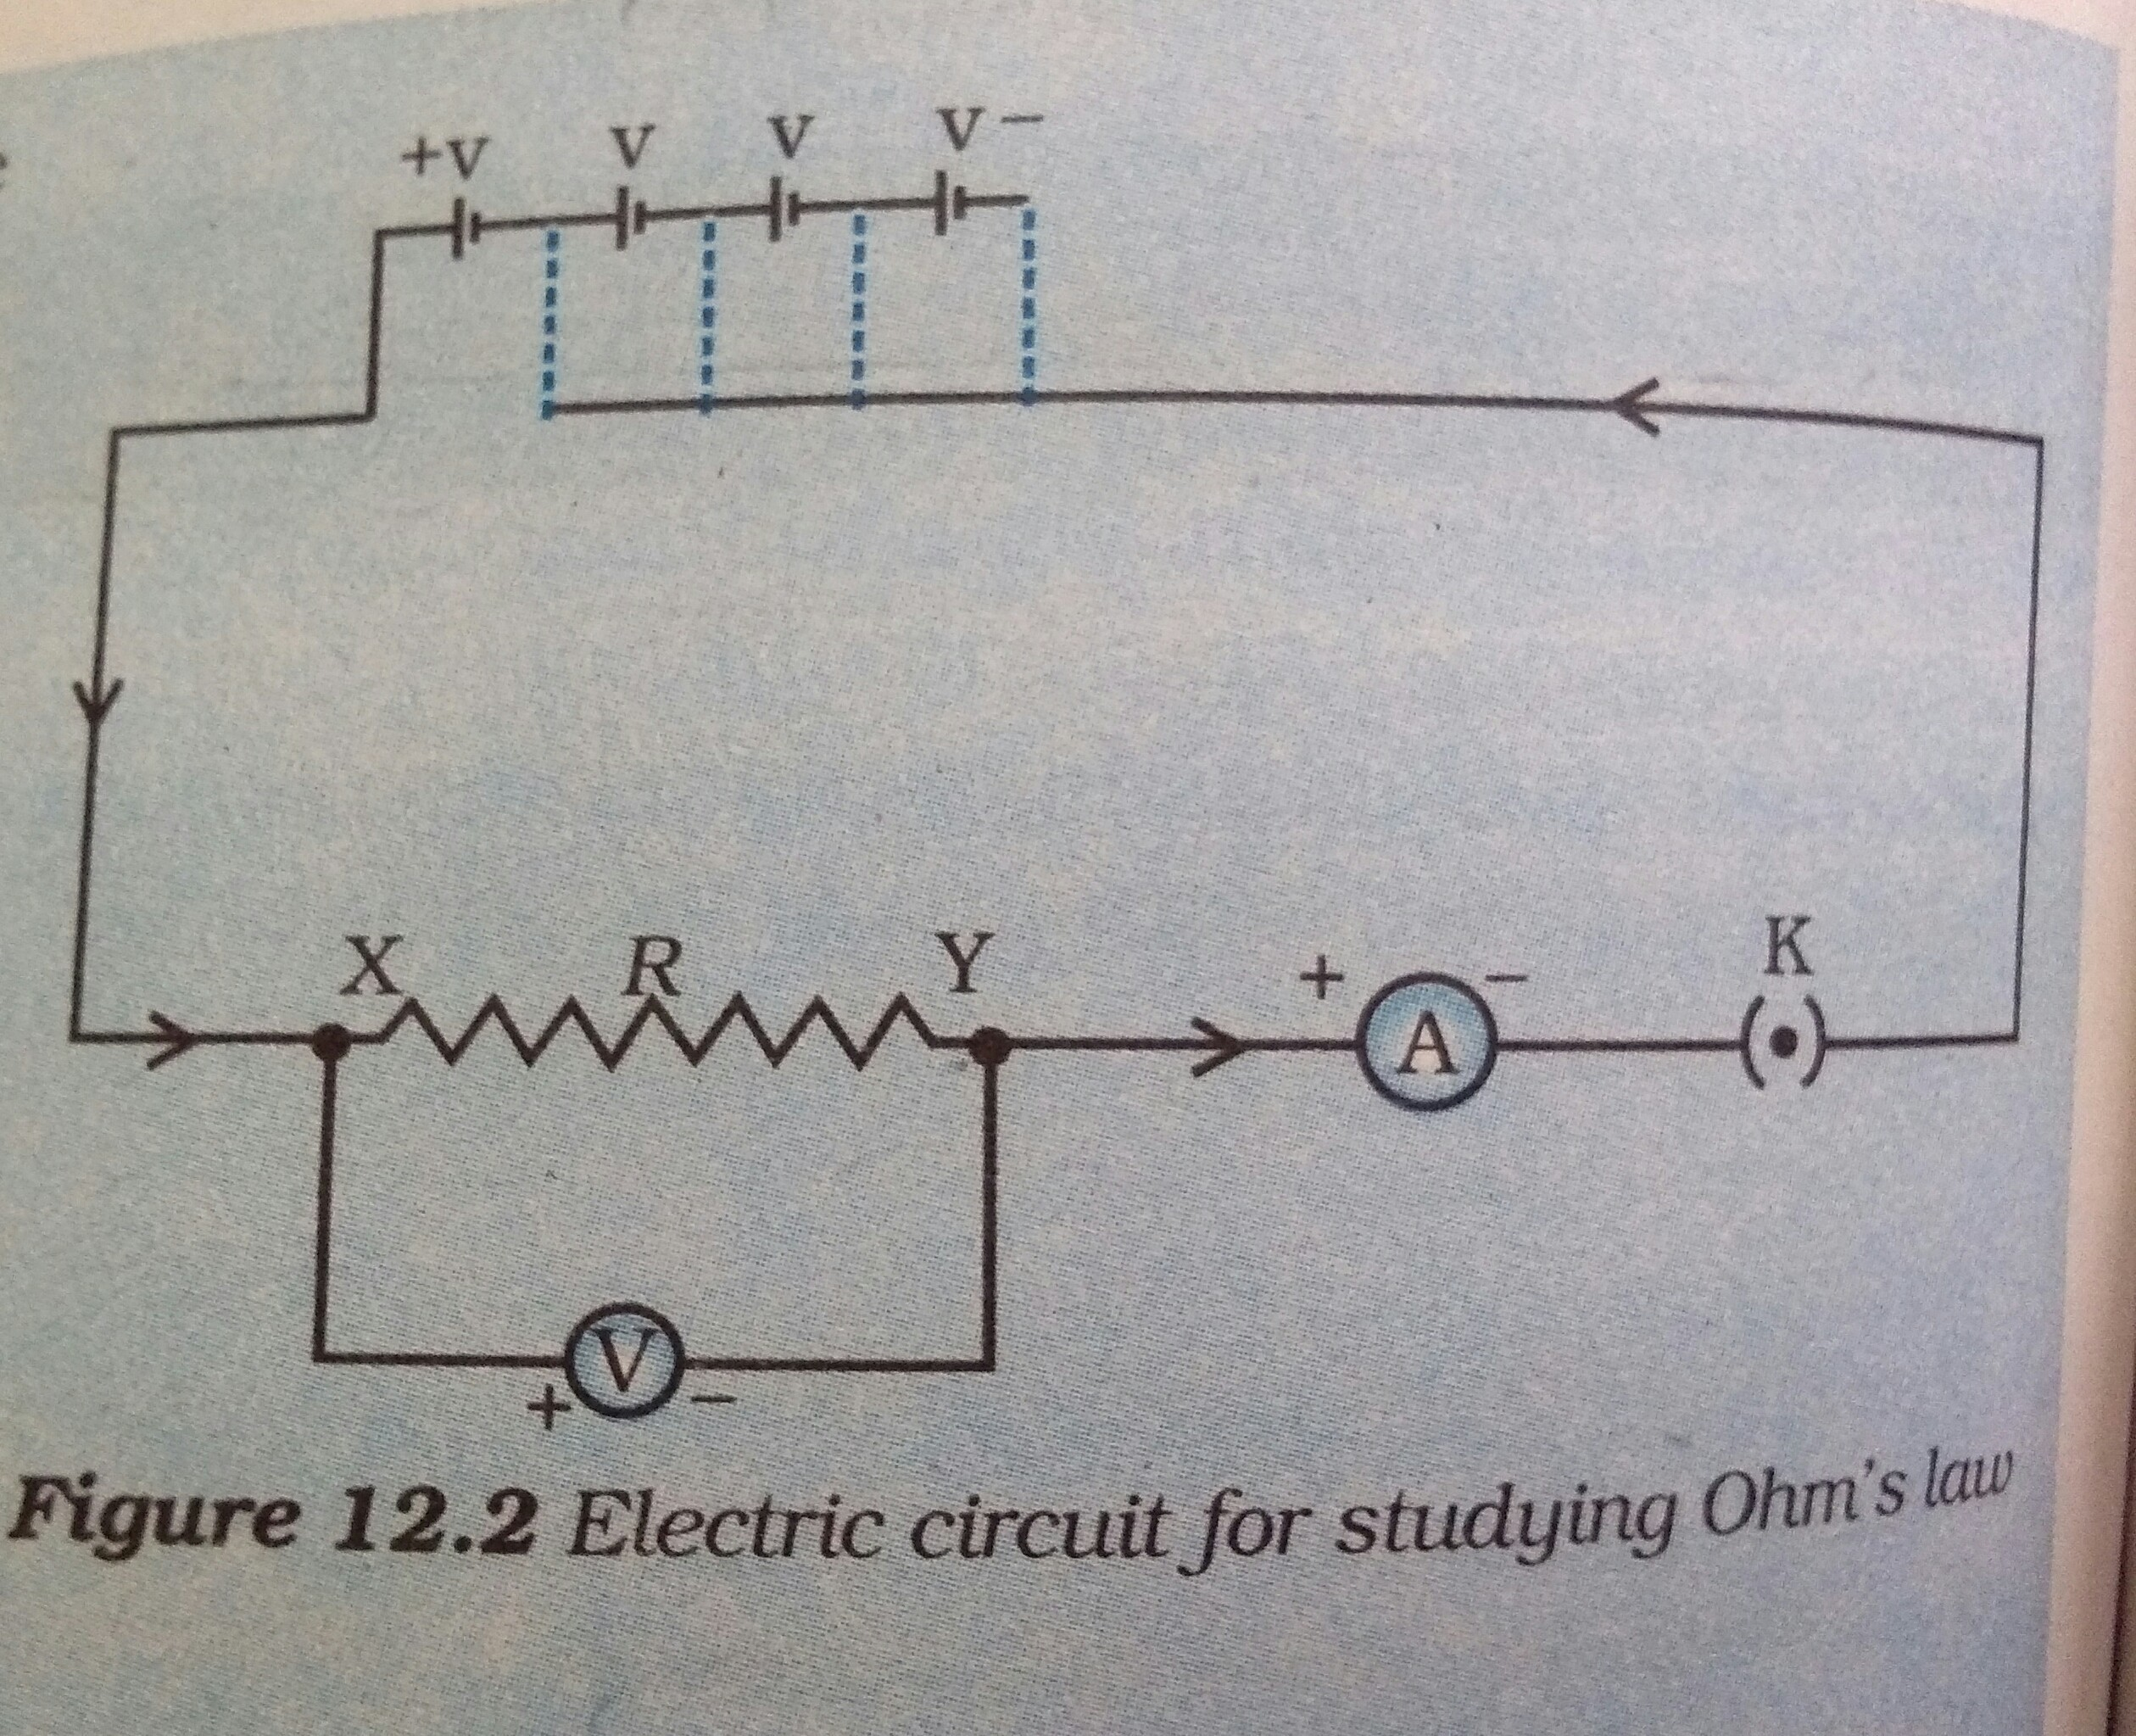 Draw The Electric Circuit Diagram To Show Arrangement Of Drawing Circuits Download